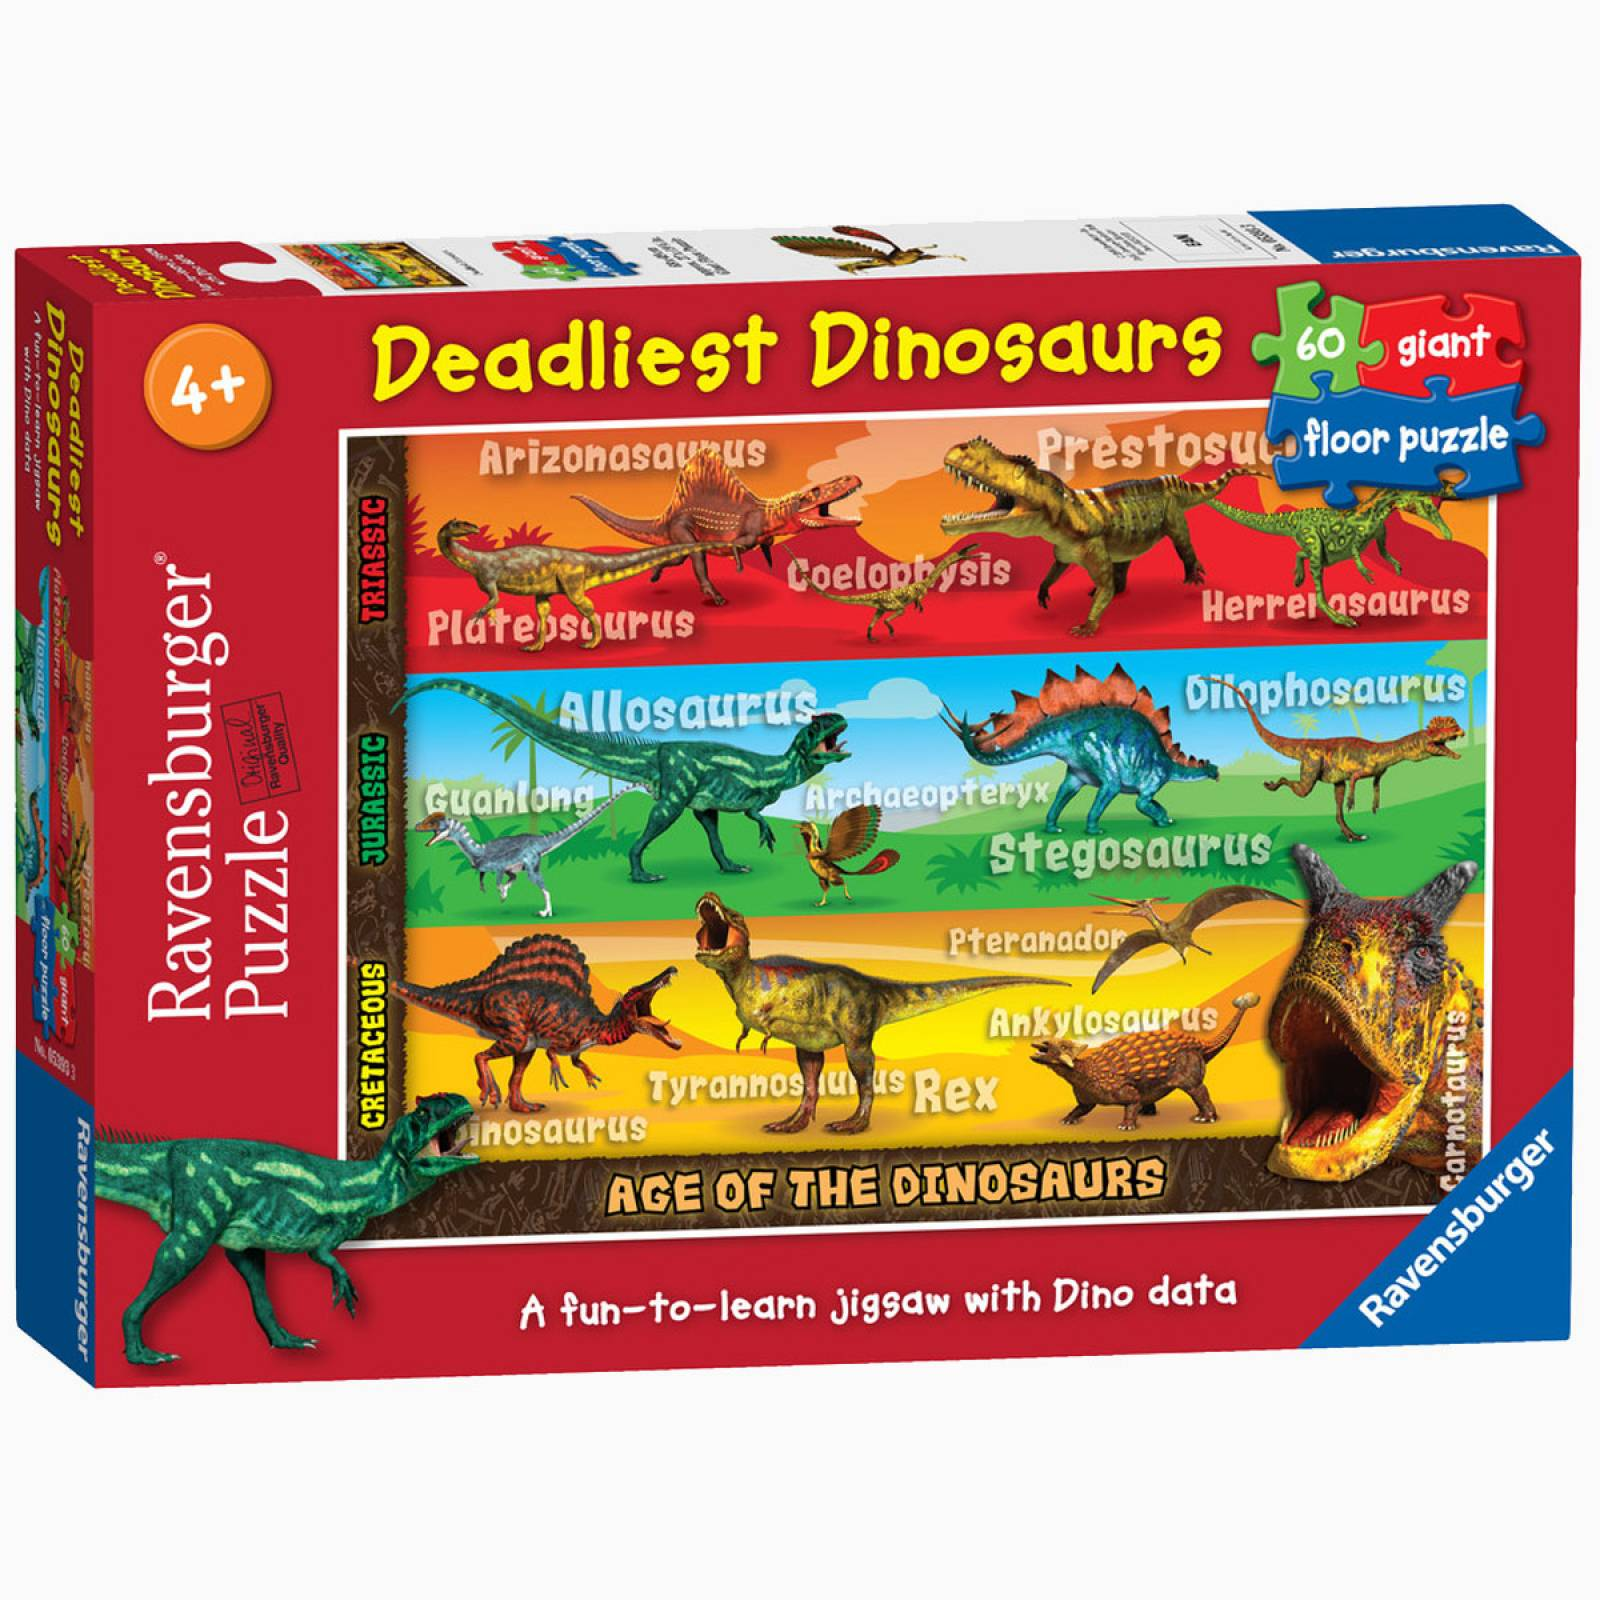 Deadliest Dinosaurs Giant Floor Puzzle